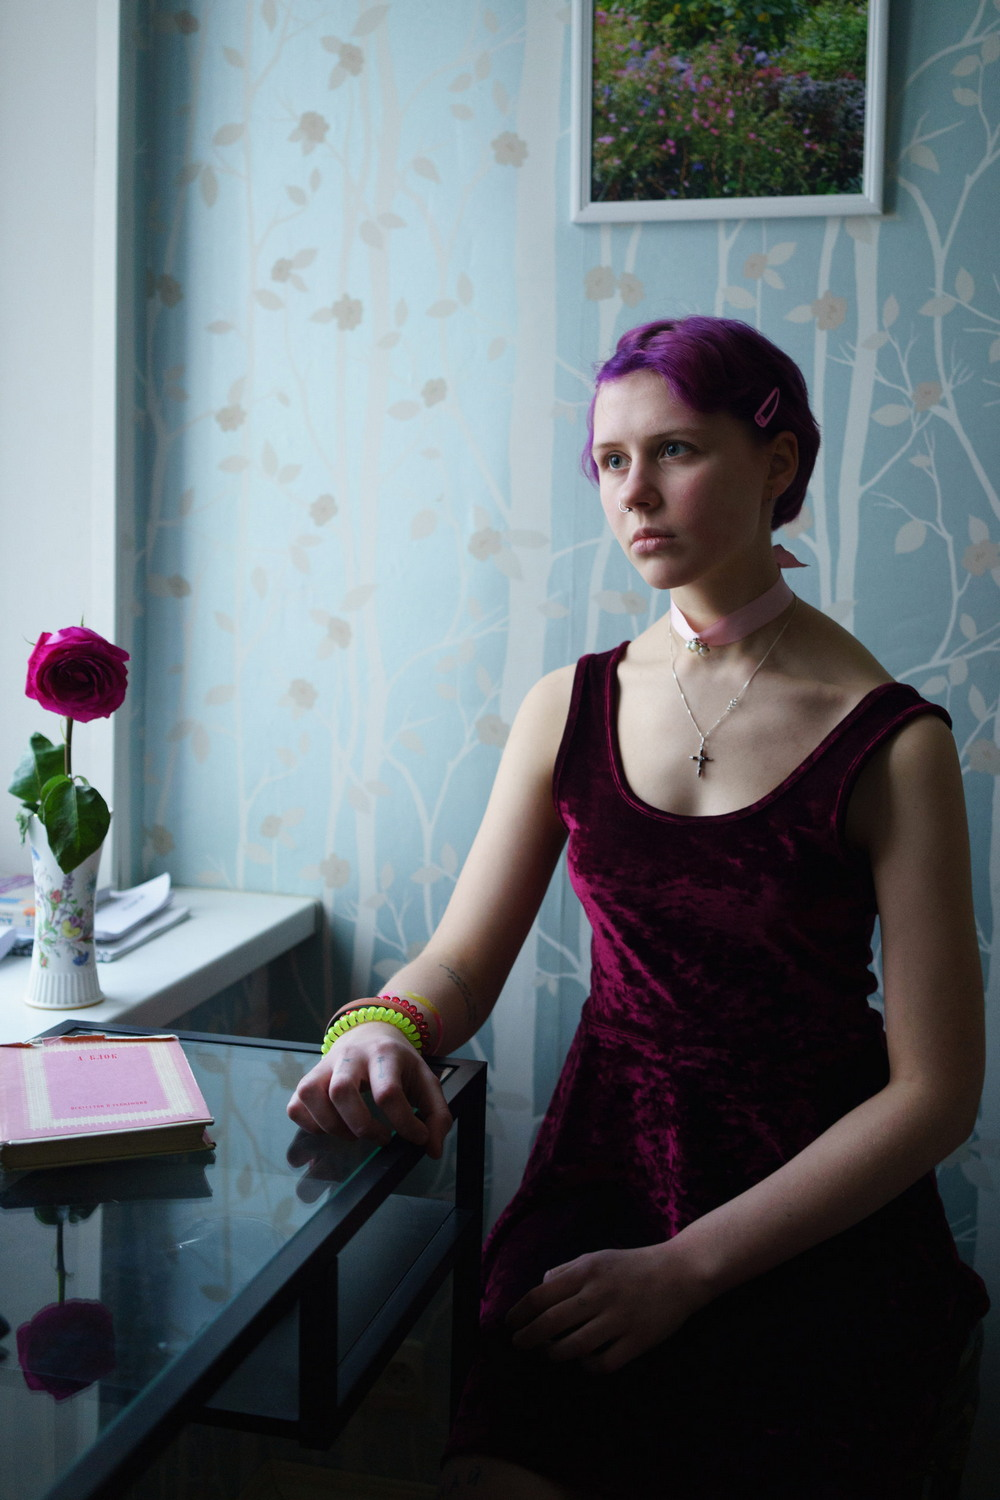 Youth and recklessness in the pictures of Olya Vorobeva